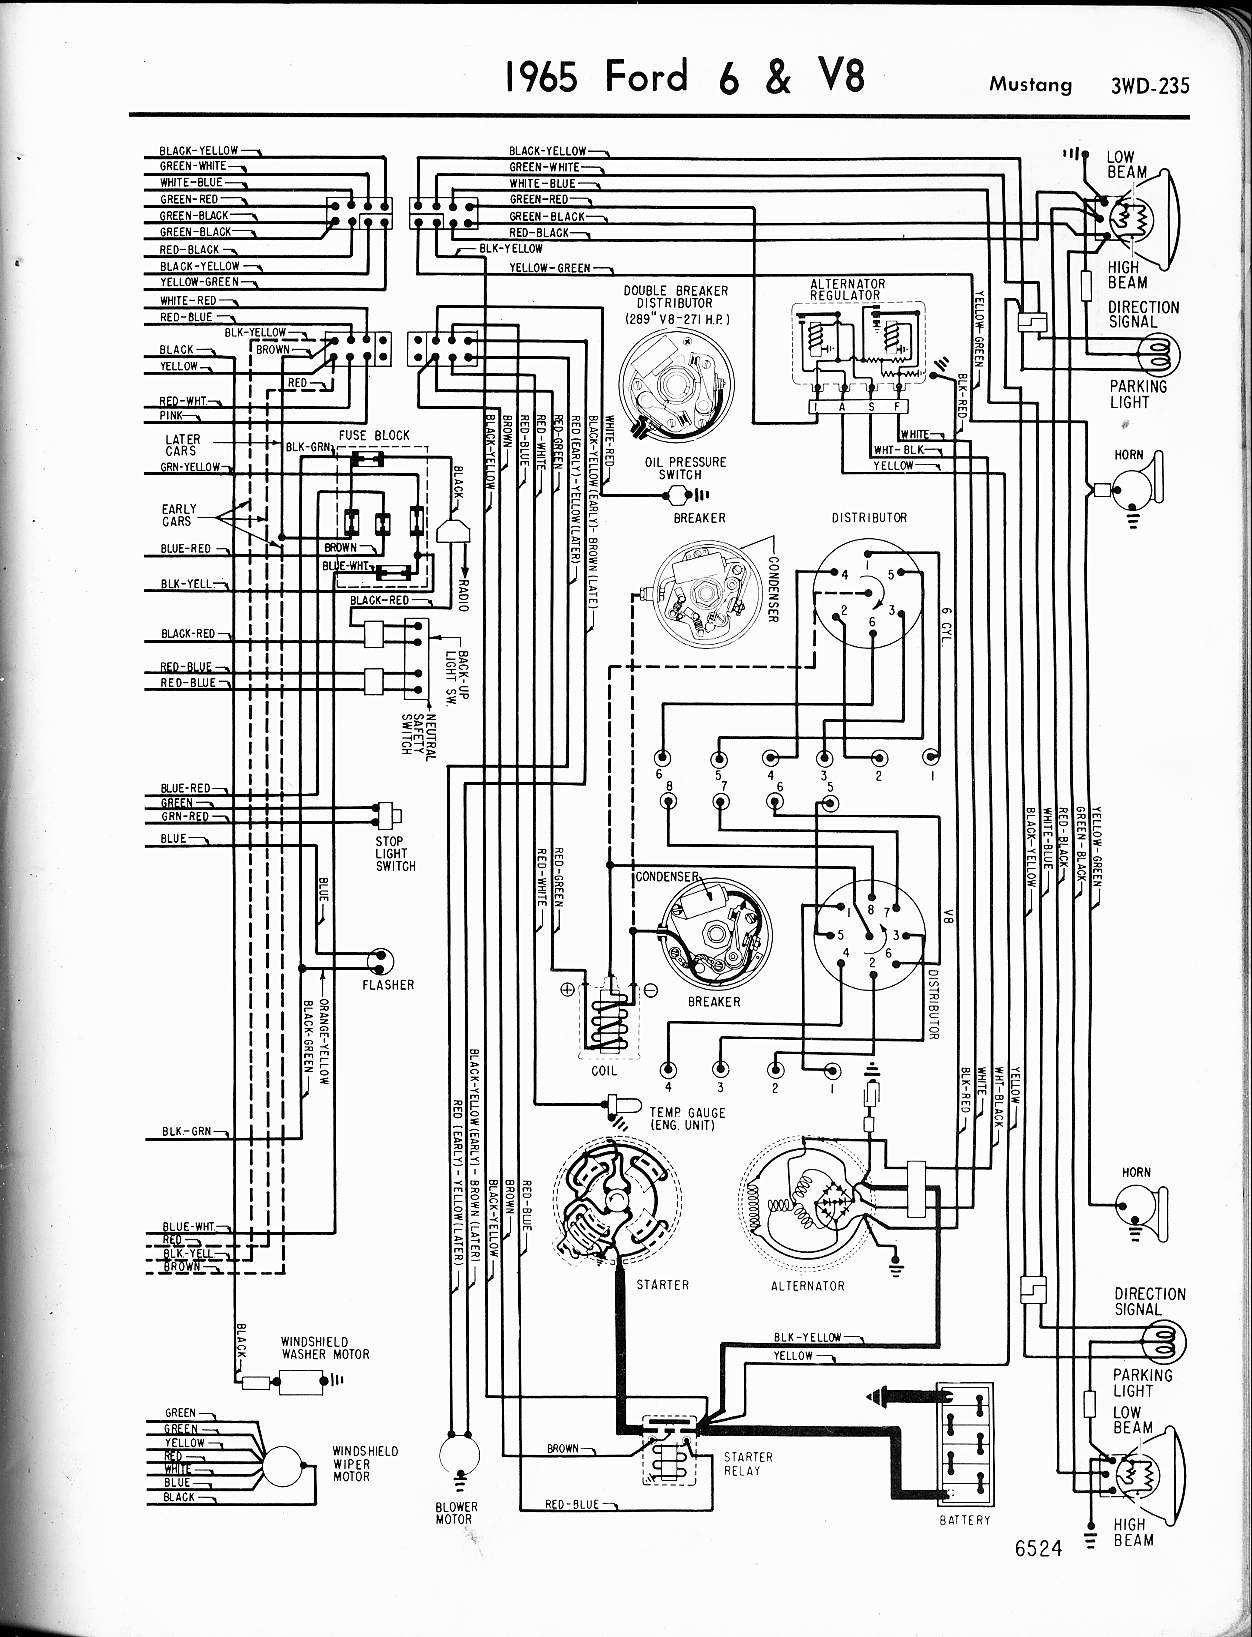 1965_mustang_wiring_2 ford diagrams 1965 mustang wiring harness diagram at fashall.co